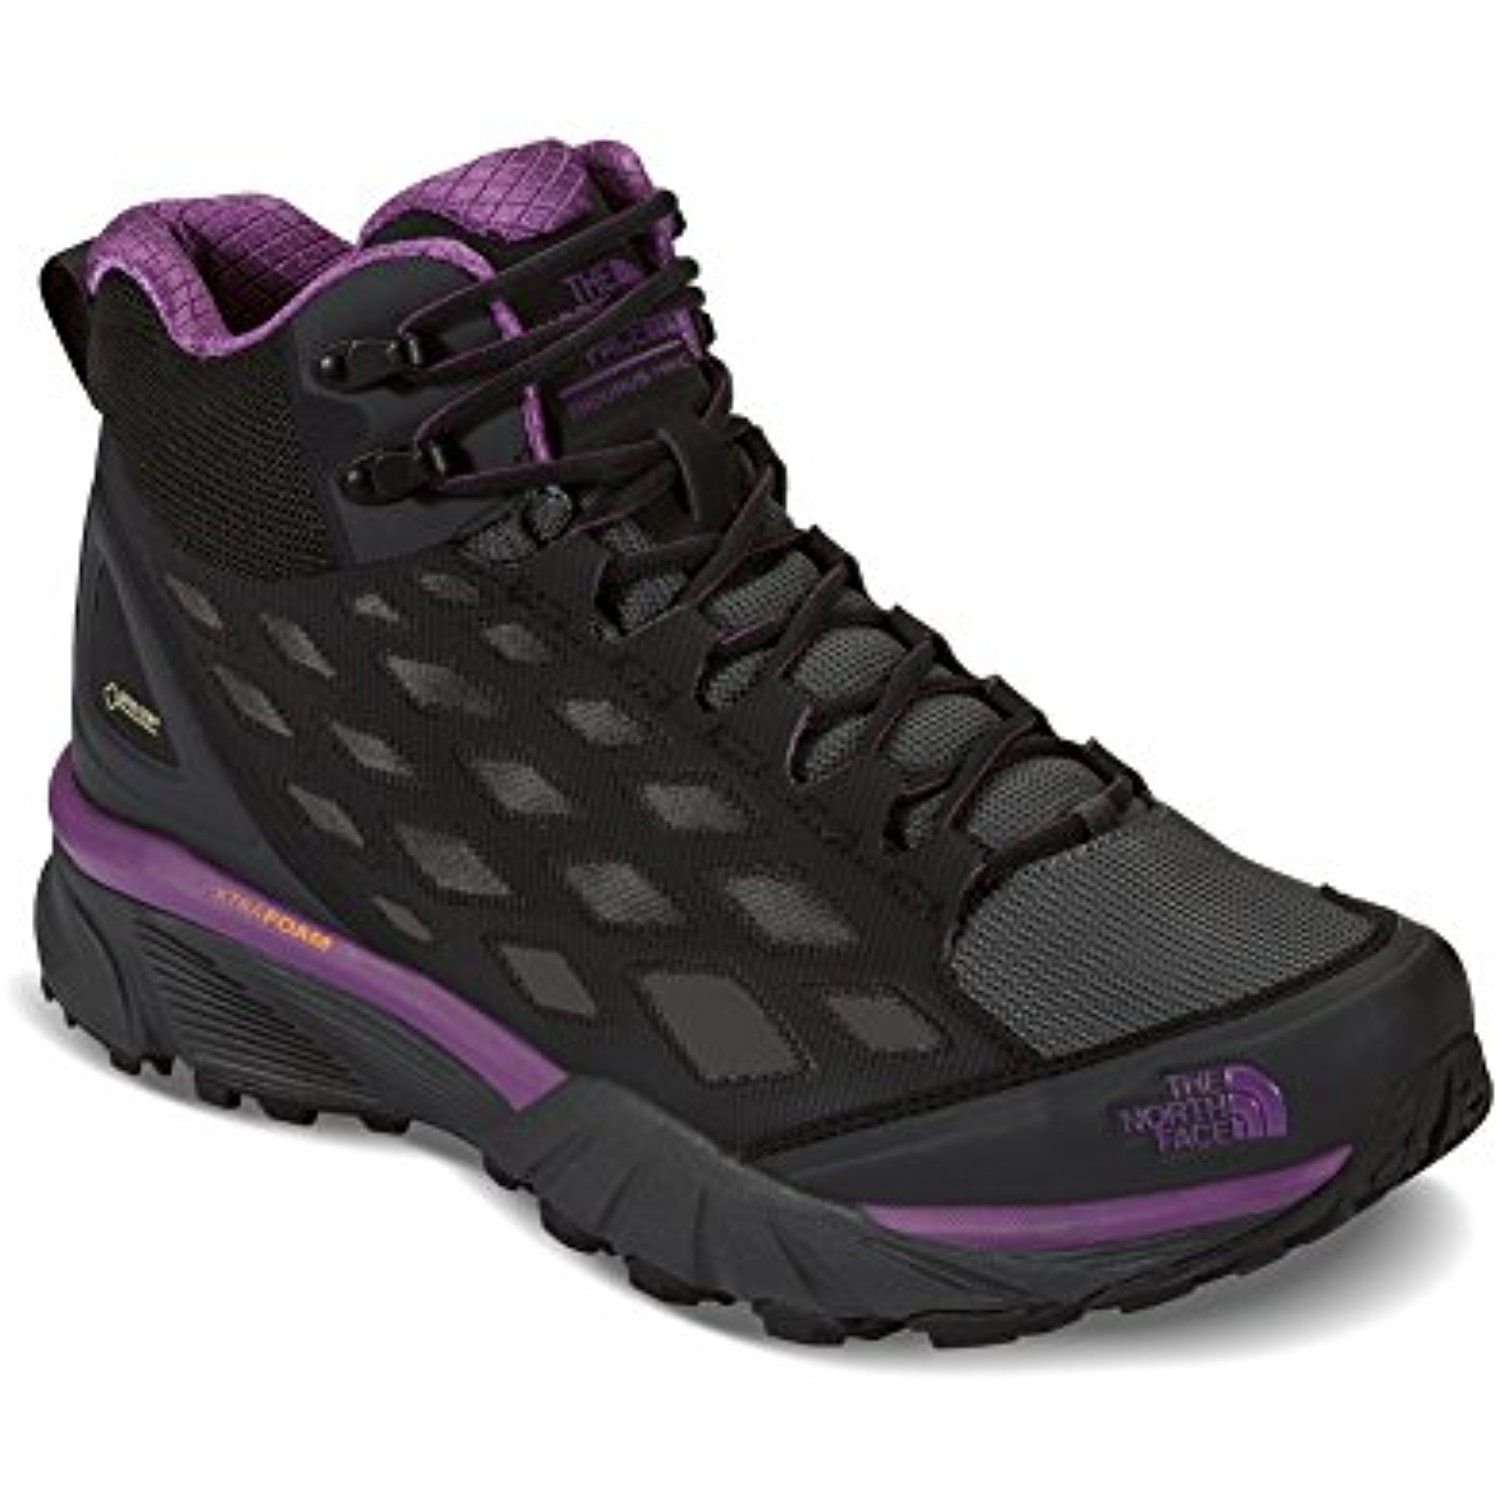 41++ North face hiking shoes womens ideas information